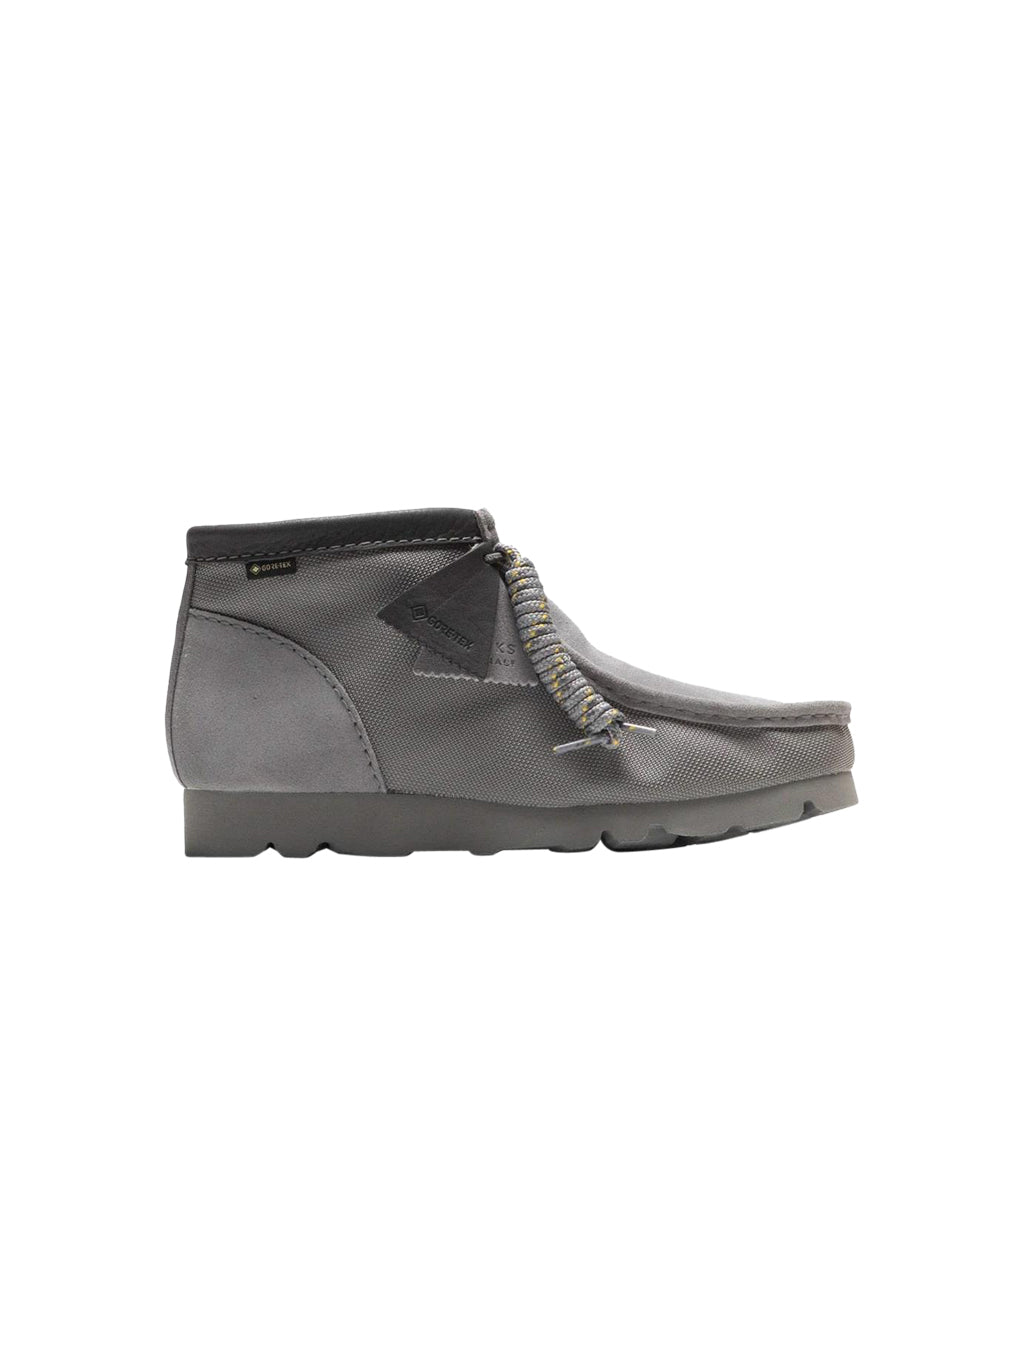 Light Grey Gore-Tex Wallabee Boots